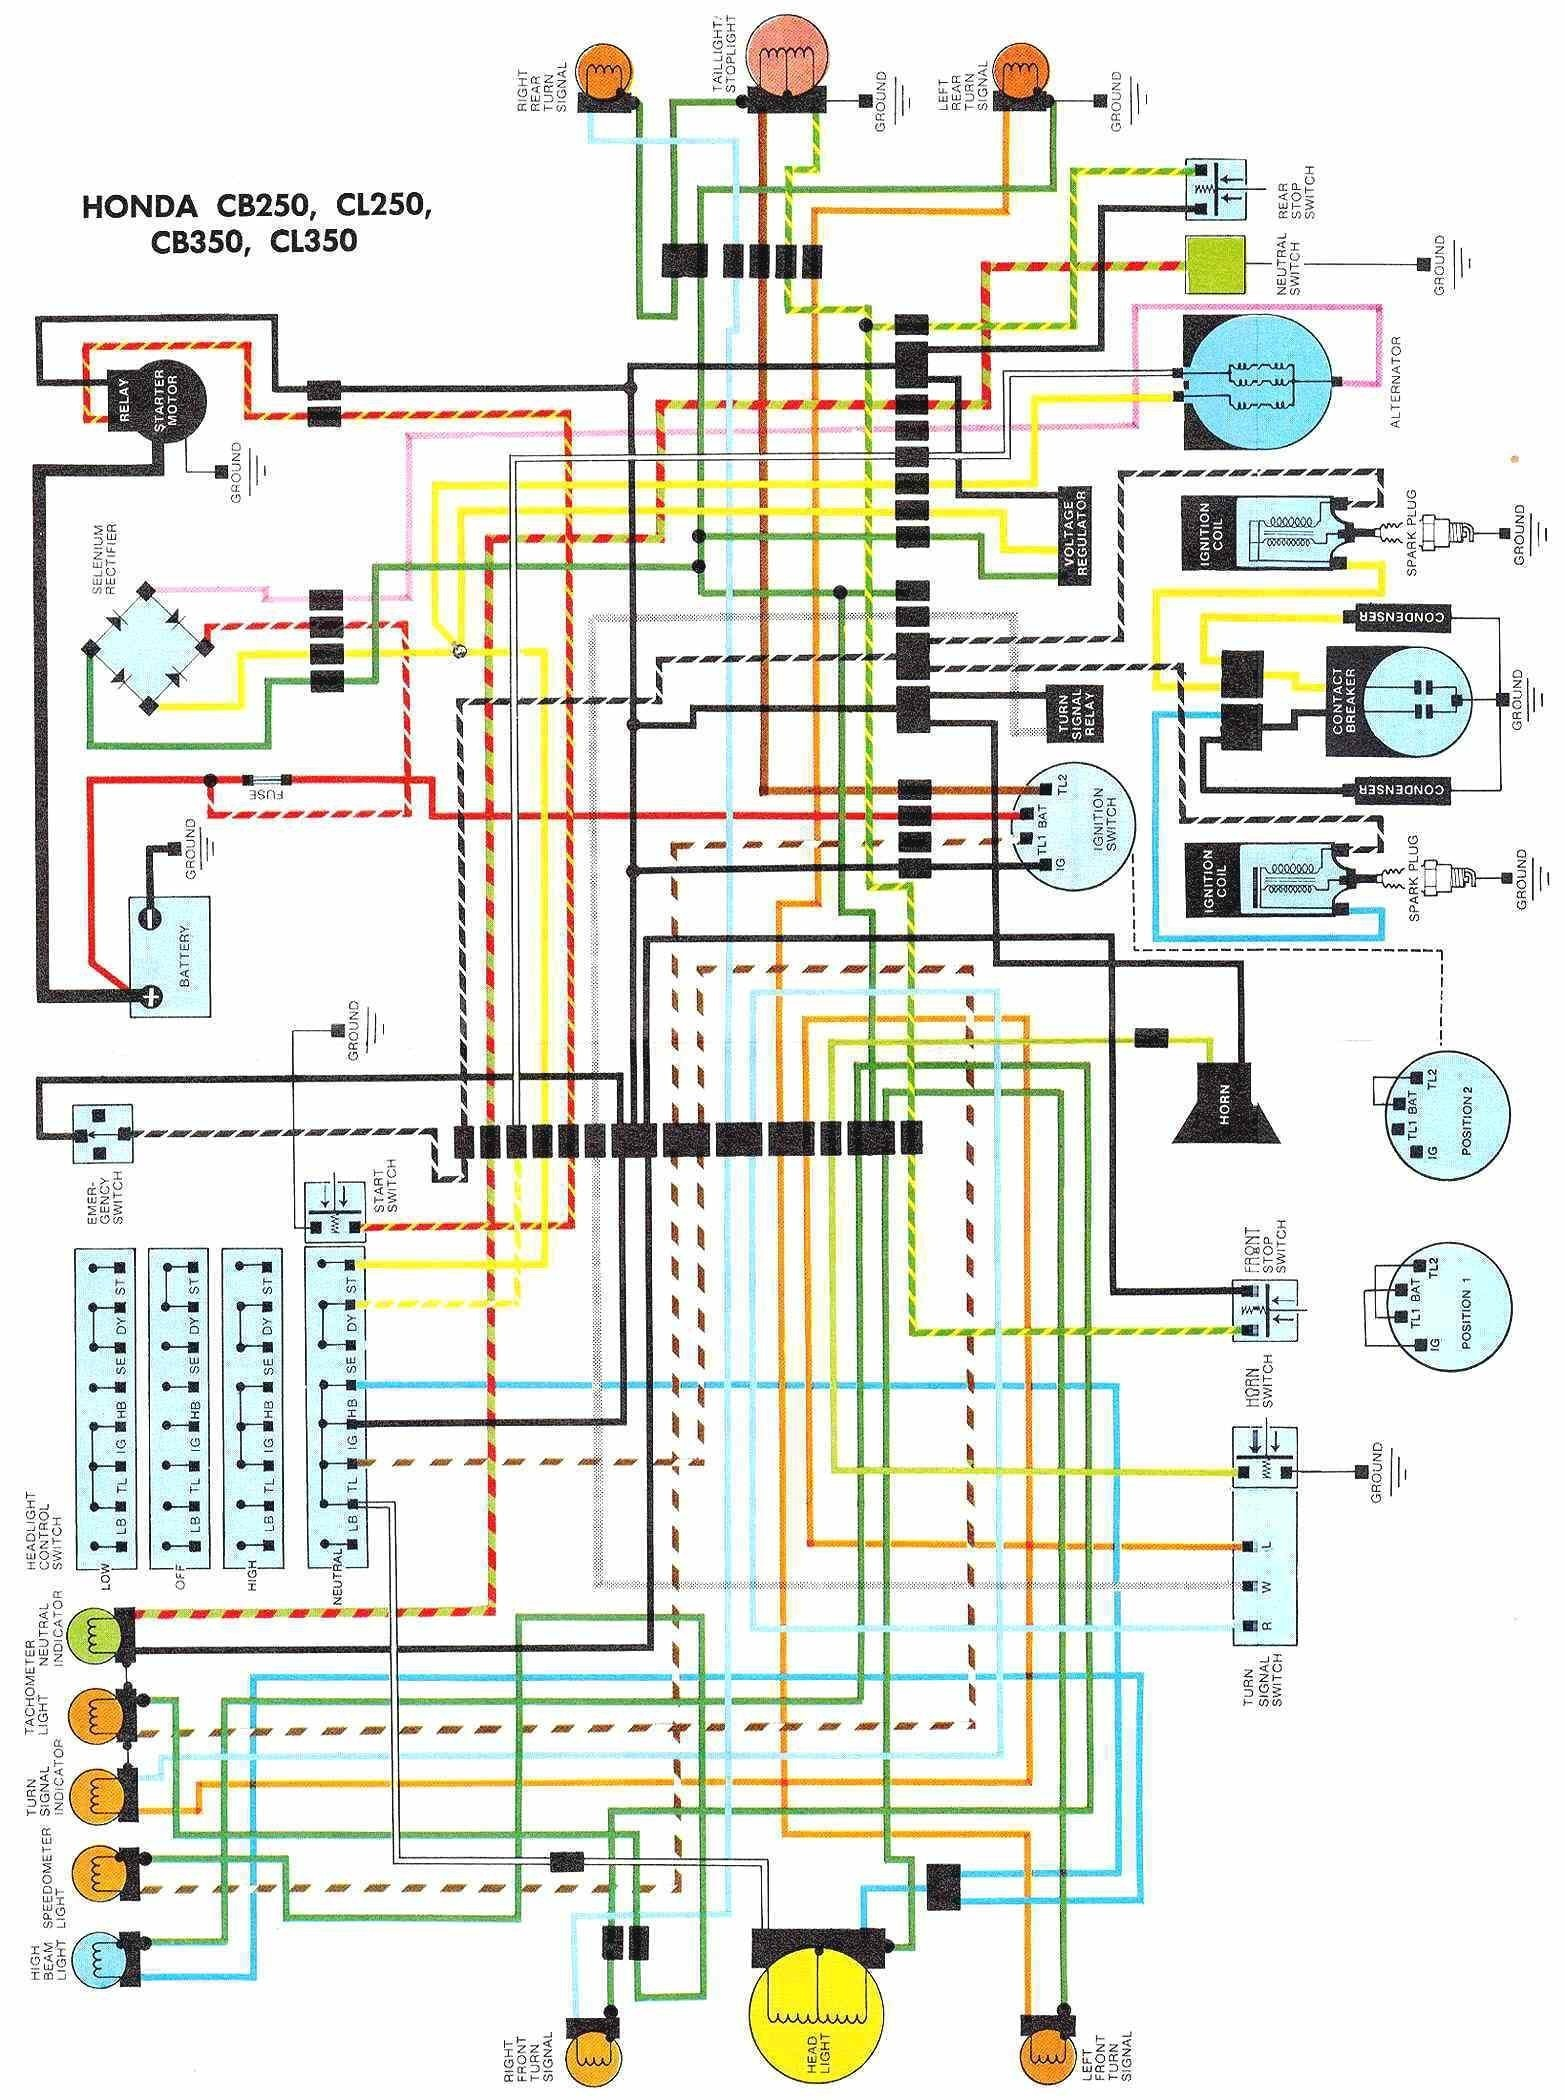 Simple Wiring Diagram 1975 Honda Cb360 Another Diagrams Cb400f Cl360 Data Schematic U2022 Rh Masterlimobc Com 1977